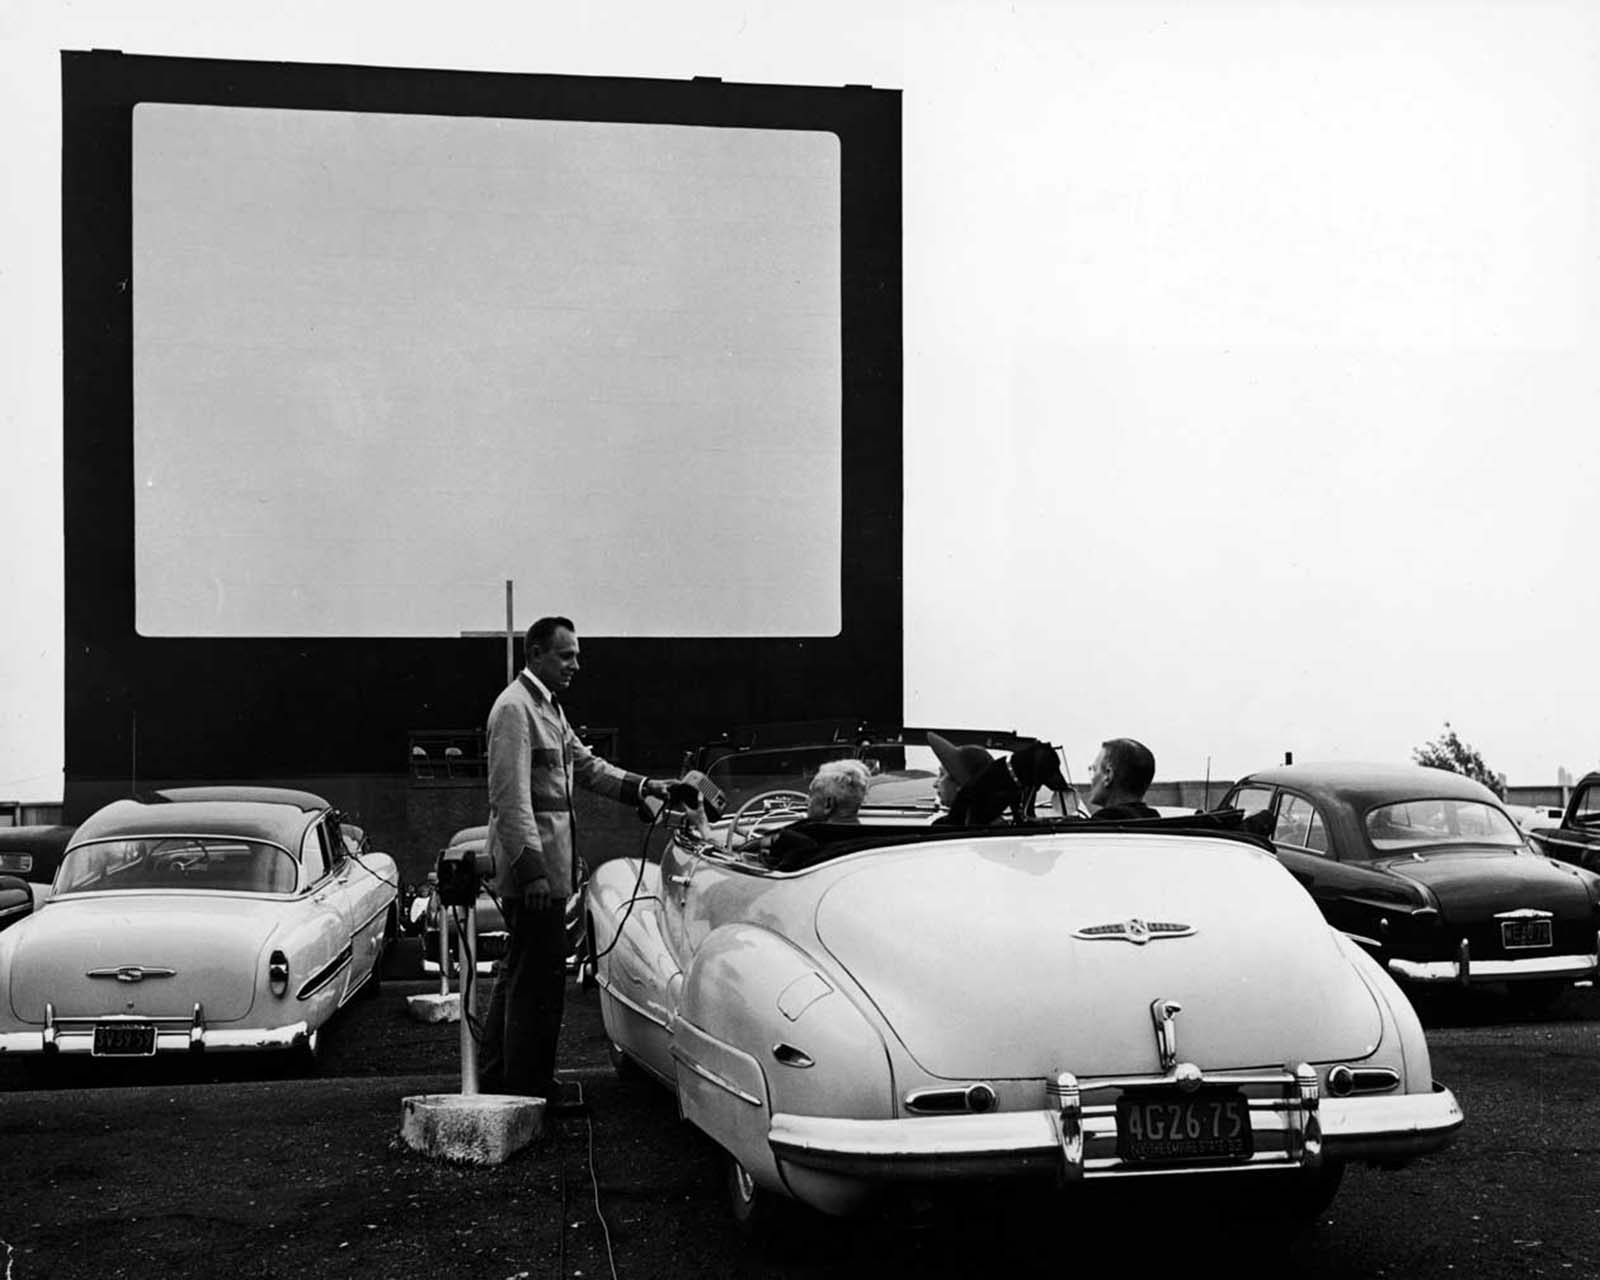 A uniformed drive-in theater attendant hands a clip-on speaker to the driver of a convertible while the car's other passengers watch, New York, early 1950s.